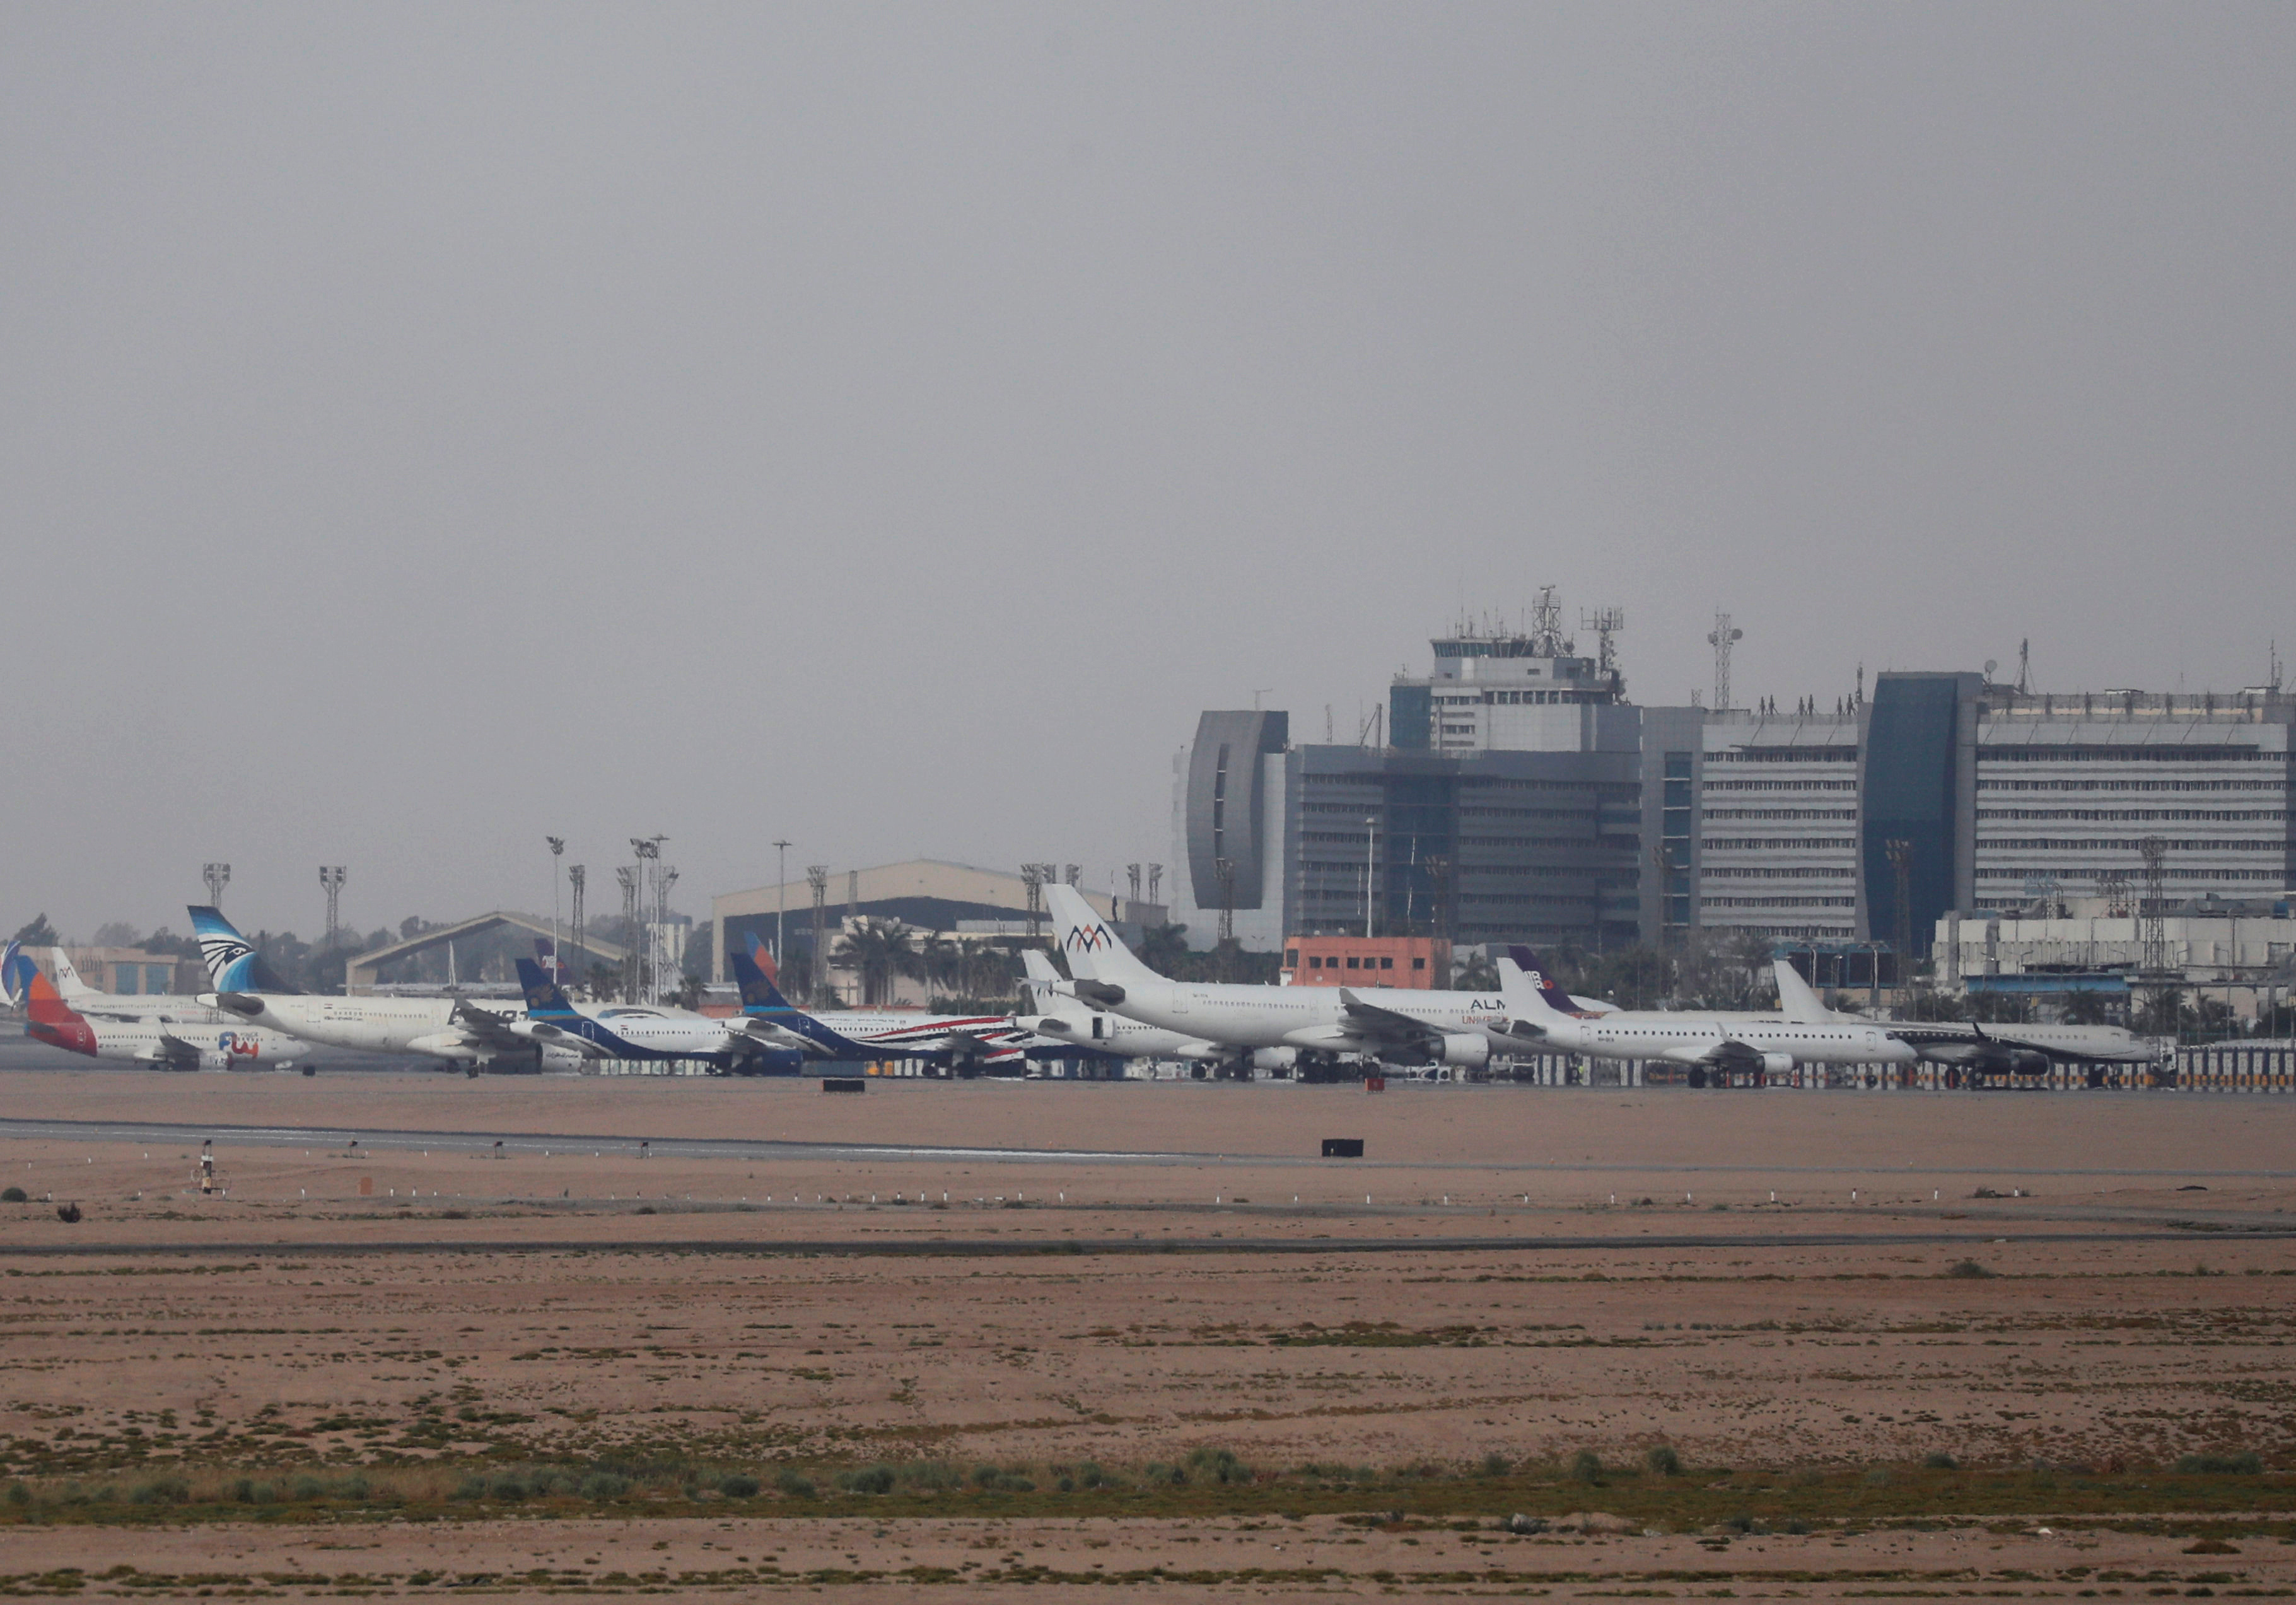 An EgyptAir plane is parked next to other planes on the runway of the Cairo International Airport, amid concerns over the coronavirus disease (COVID-19) in Cairo, Egypt June 16, 2020. Picture taken June 16, 2020. REUTERS/Amr Abdallah Dalsh